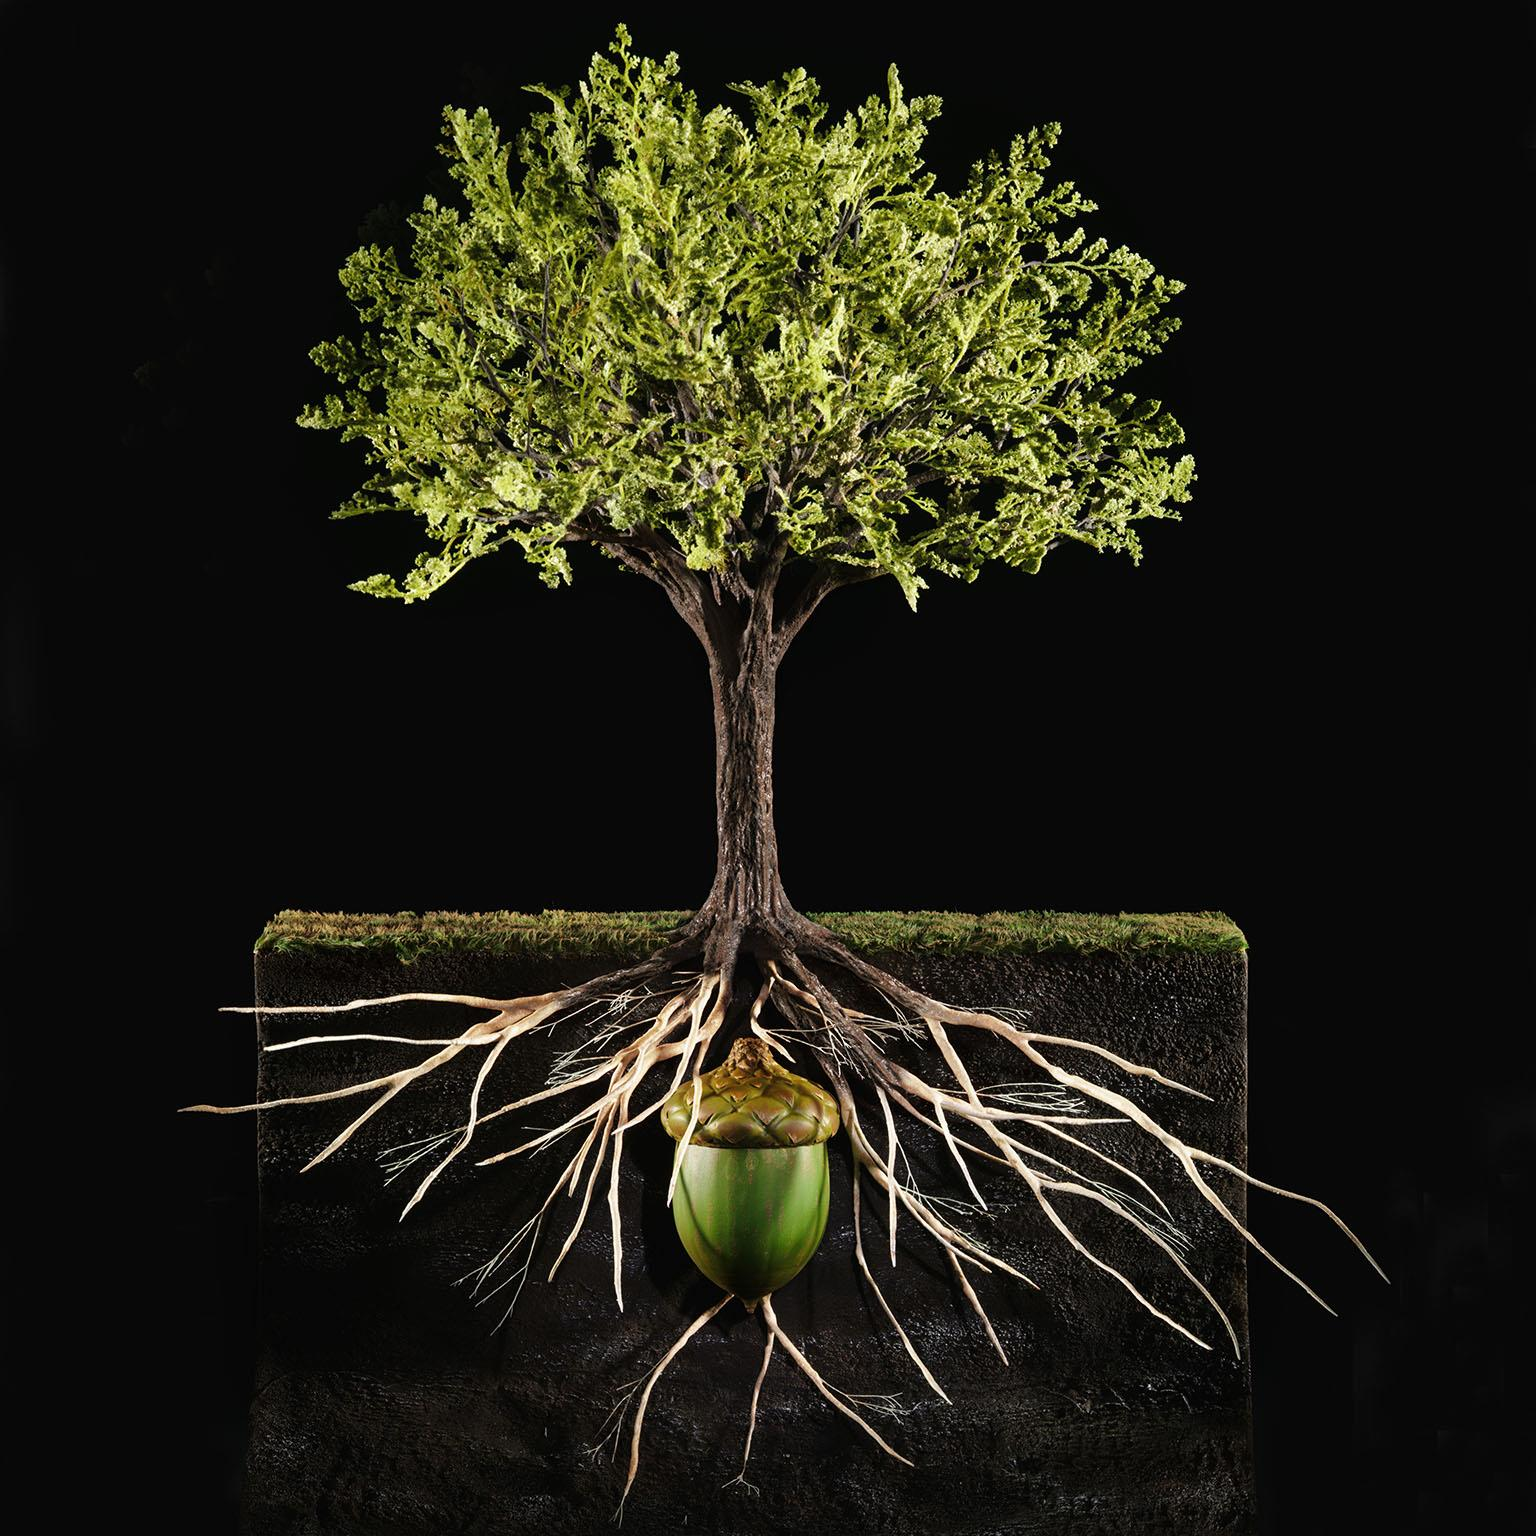 Finance Tree: The Value Premium Of Organic Growth